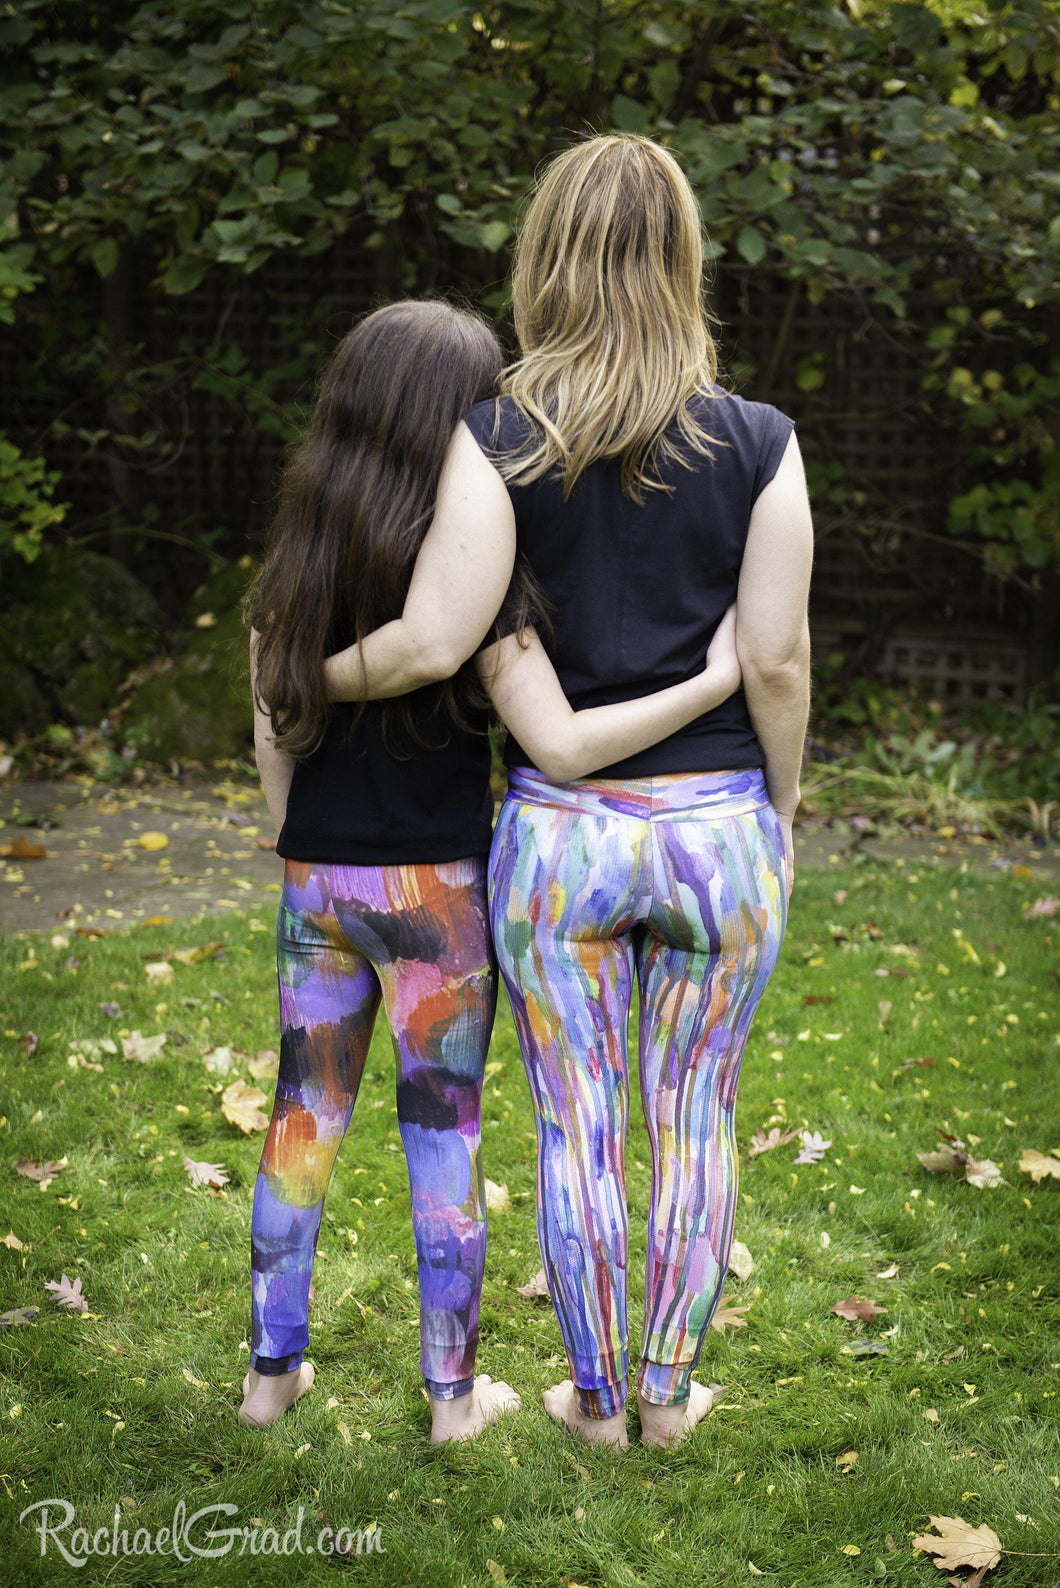 Matching Mommy and Me Art Leggings WITH RAINBOW STRIPES by Artist Rachael Grad back view